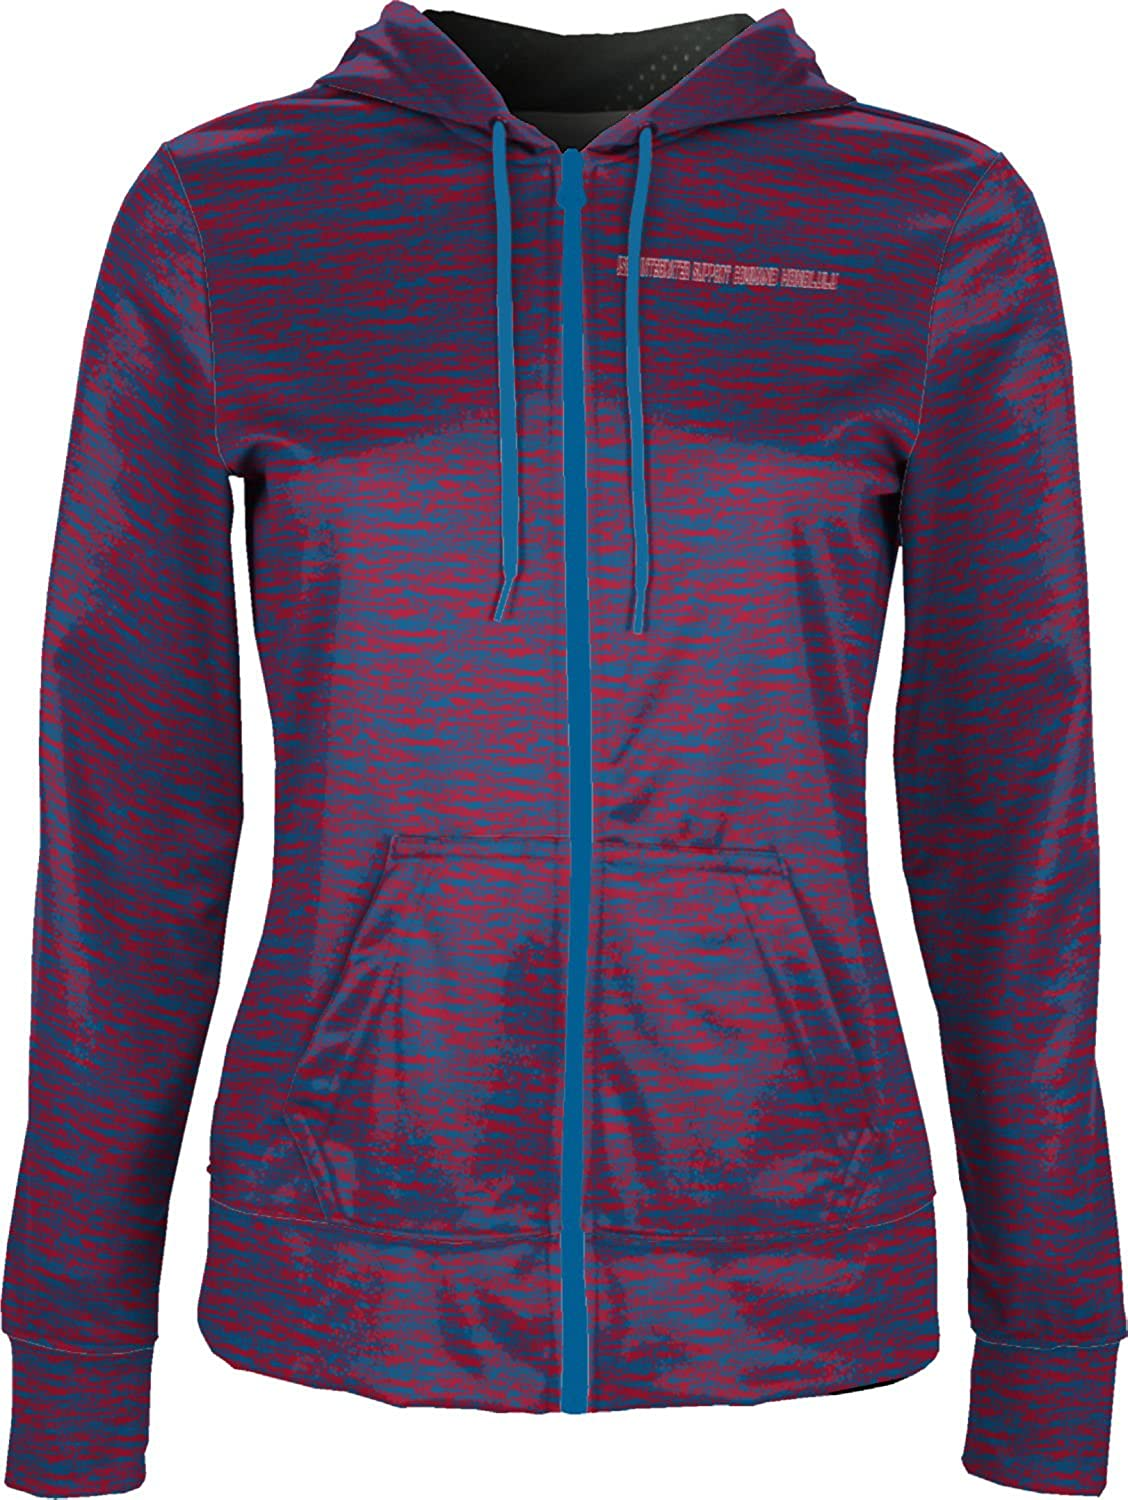 Women's USCG Integrated Support Command Honolulu Military Brushed Fullzip Hoodie